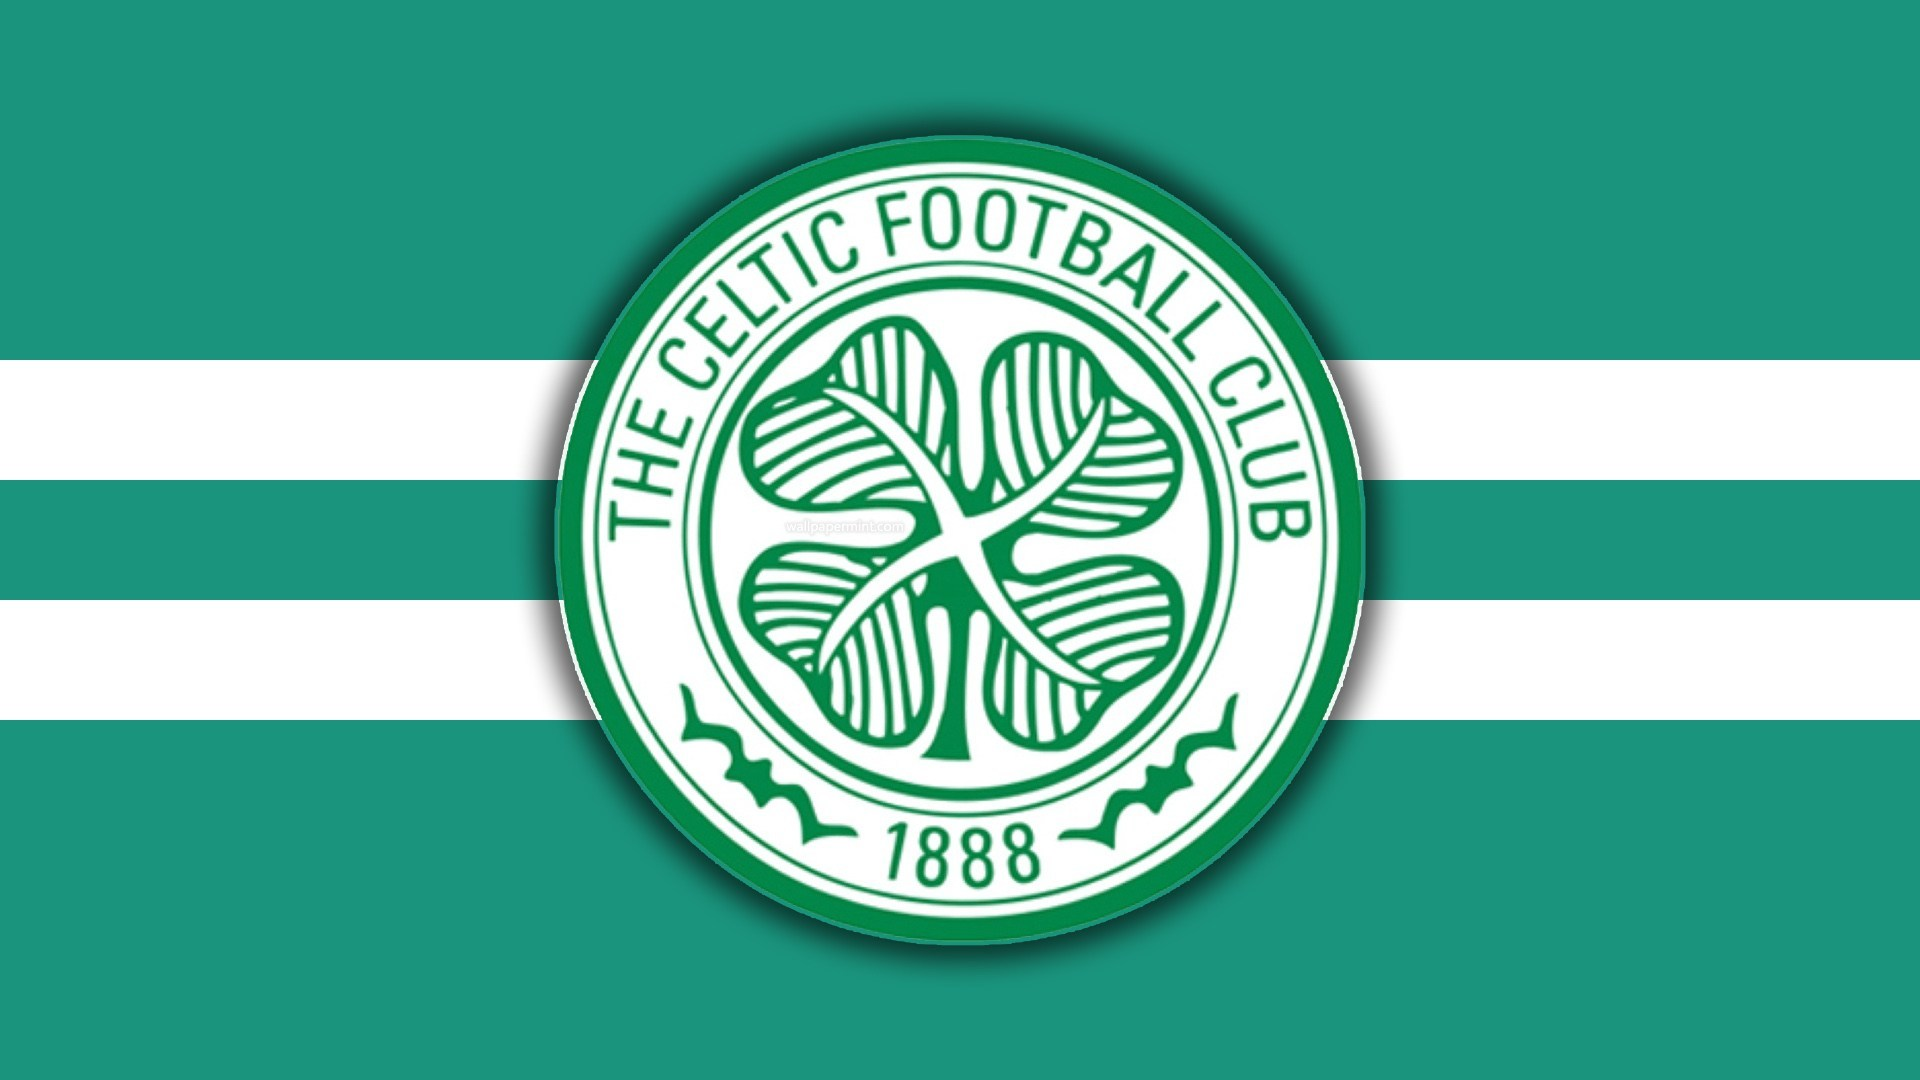 1920x1080 - Celtic F.C. Wallpapers 9